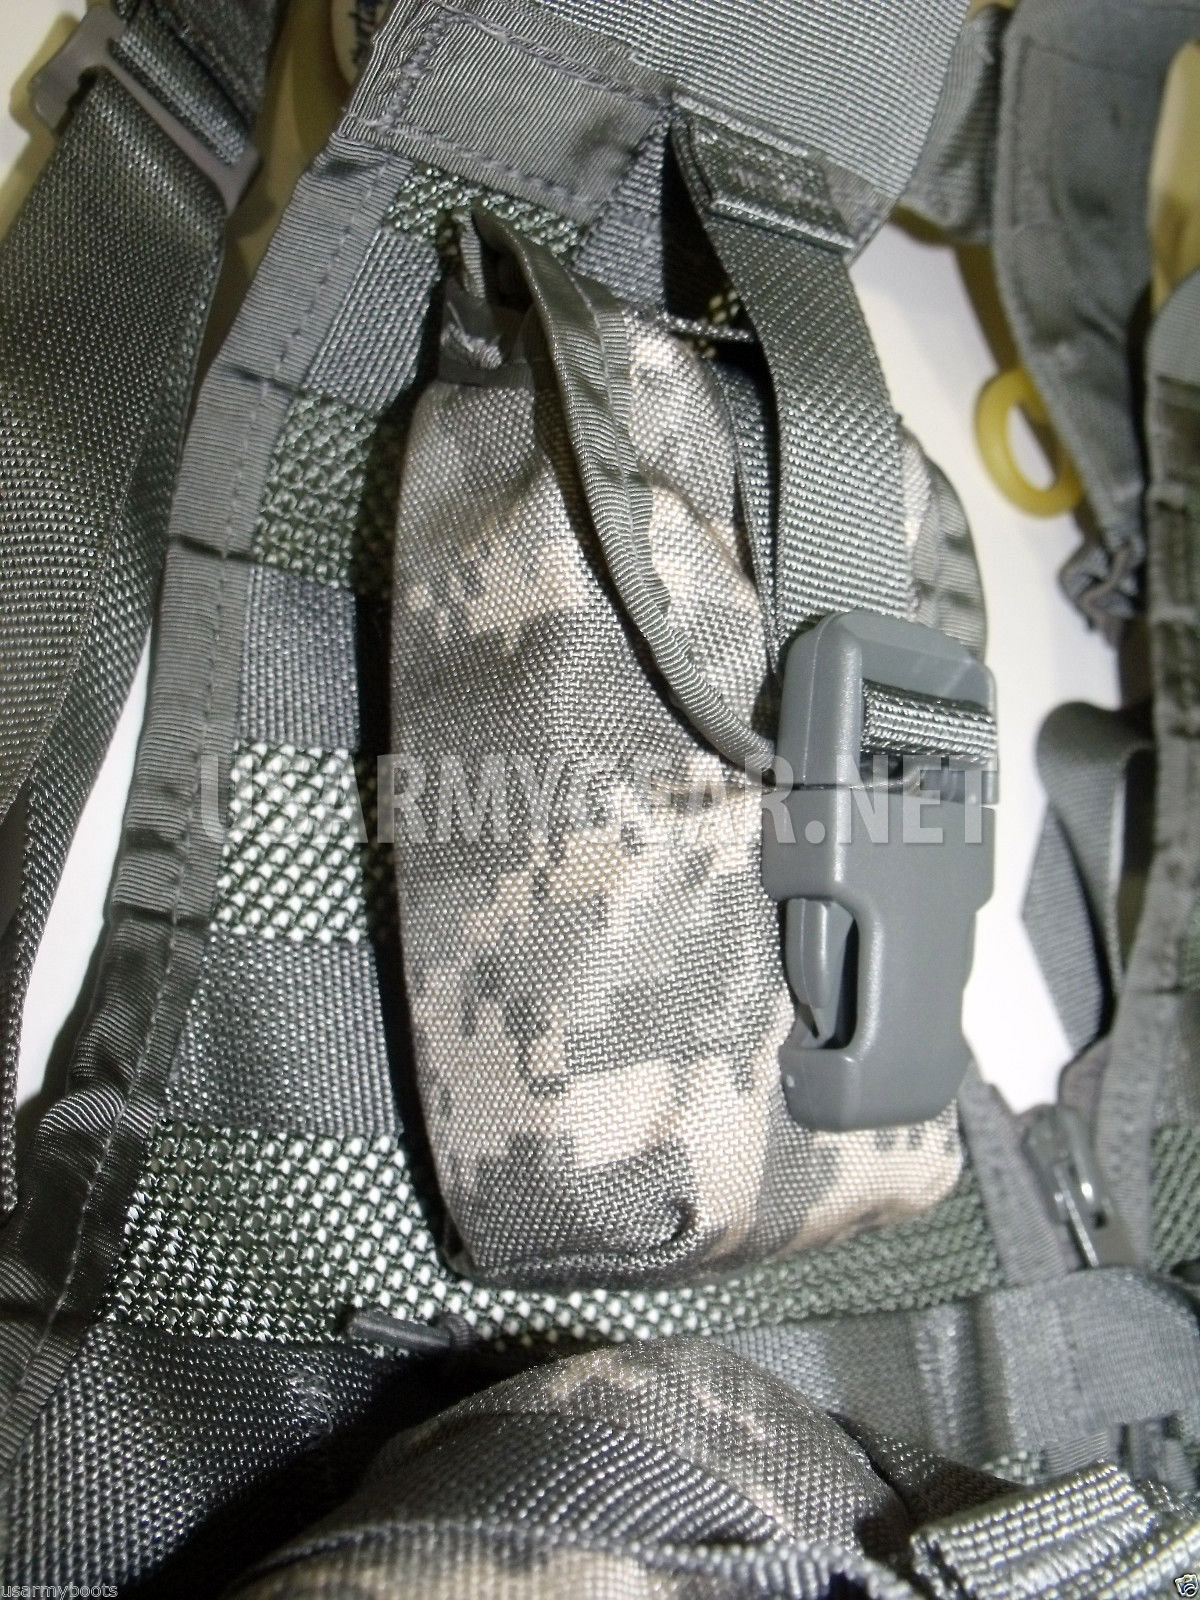 New Us Army Flash Bang Grenade Utility Pouch Us Army Gear